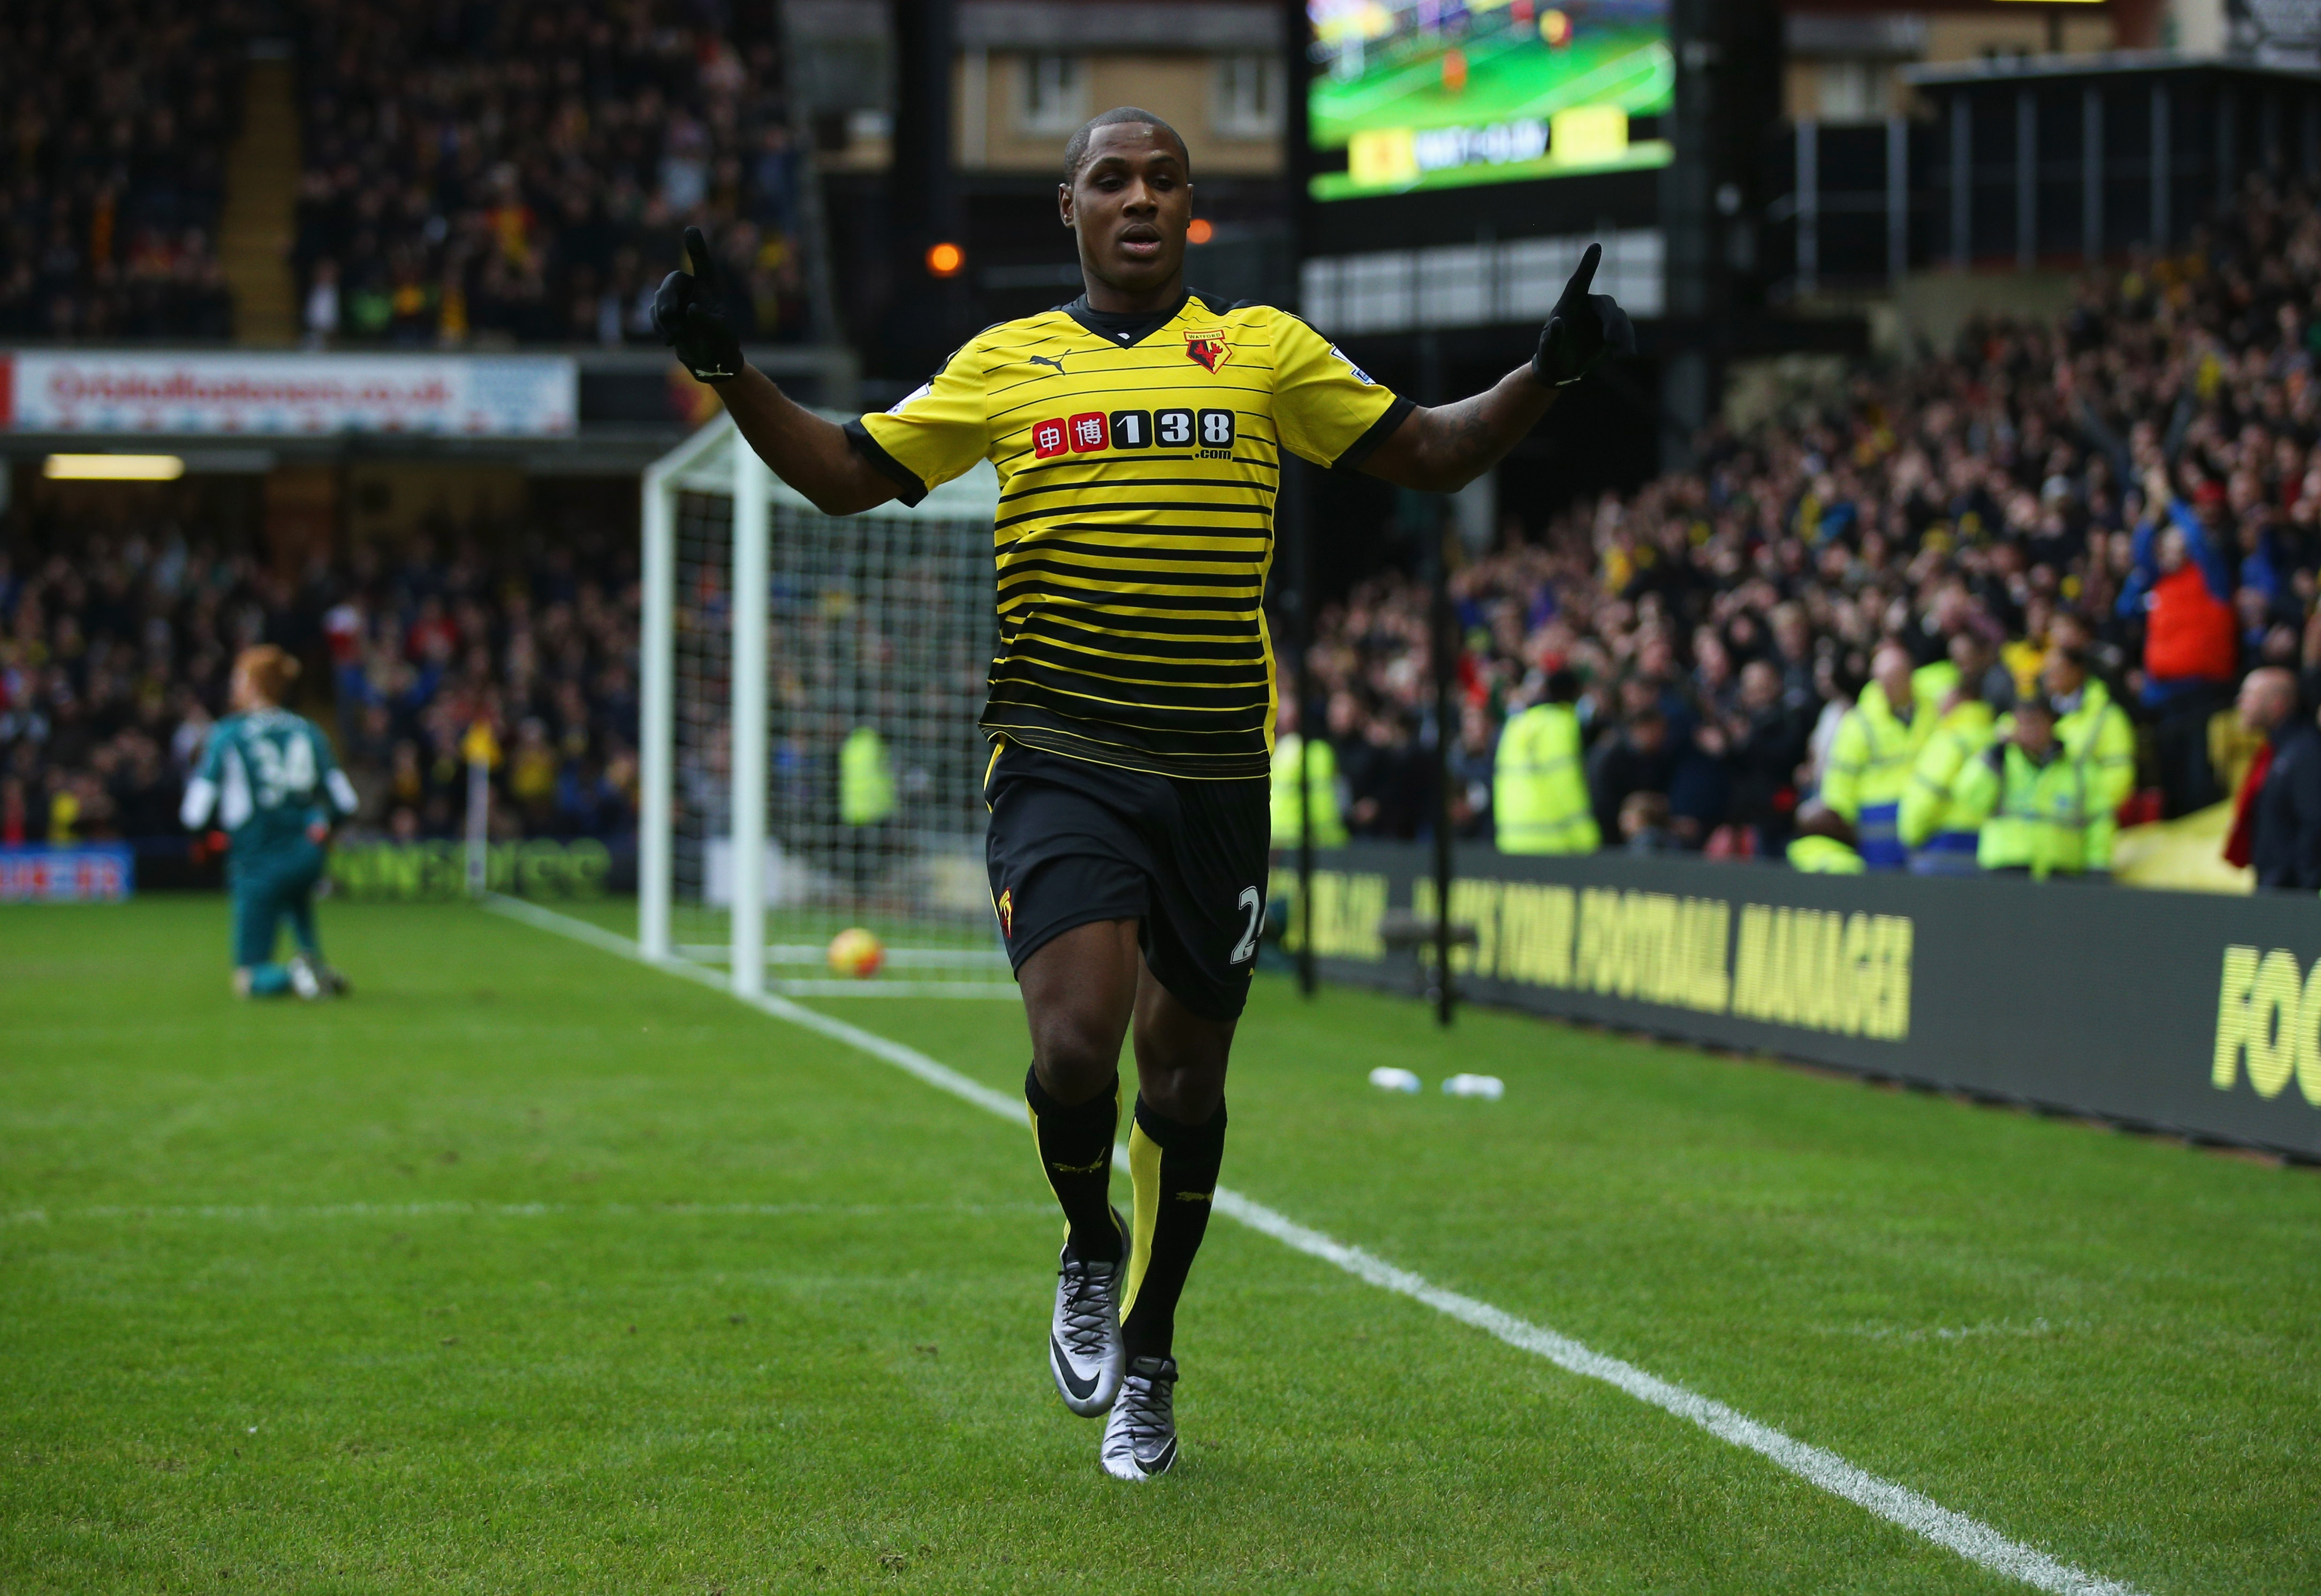 Ighalo is giving Leicester's dynamic duo a run for their money.